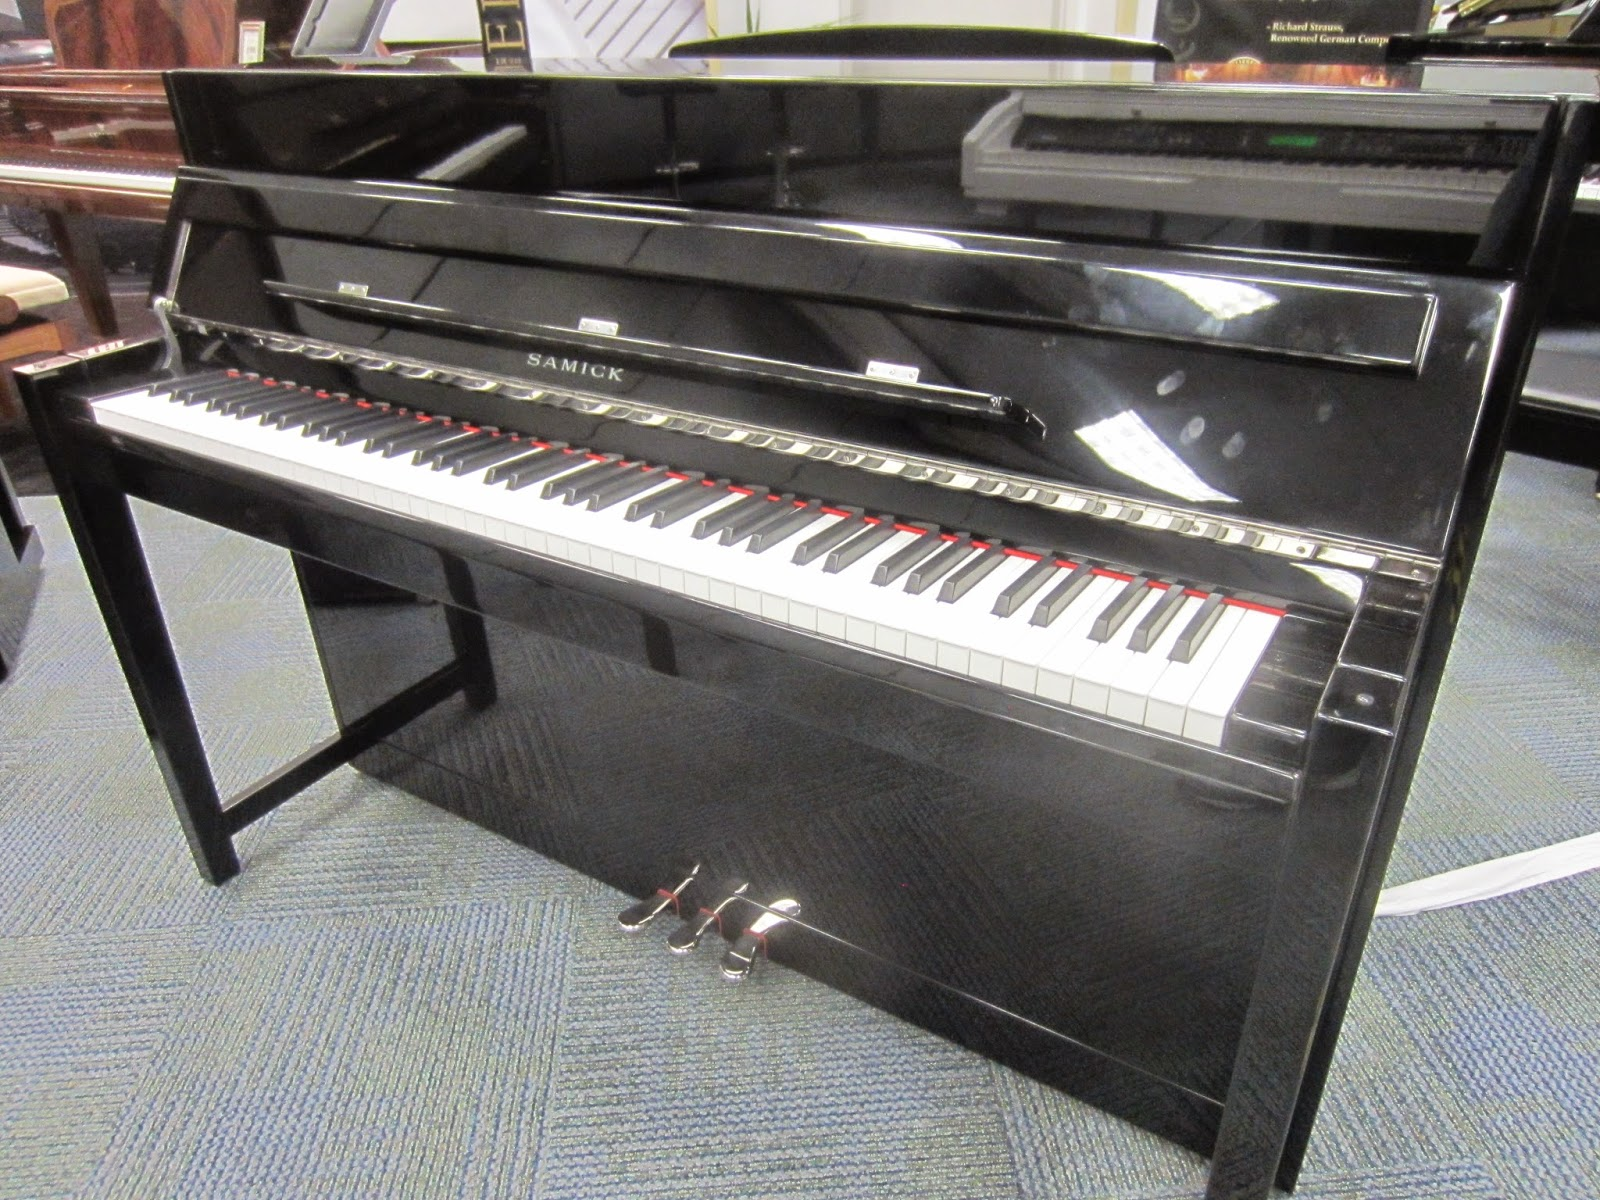 Samick Ebony NEO hybrid digital upright piano